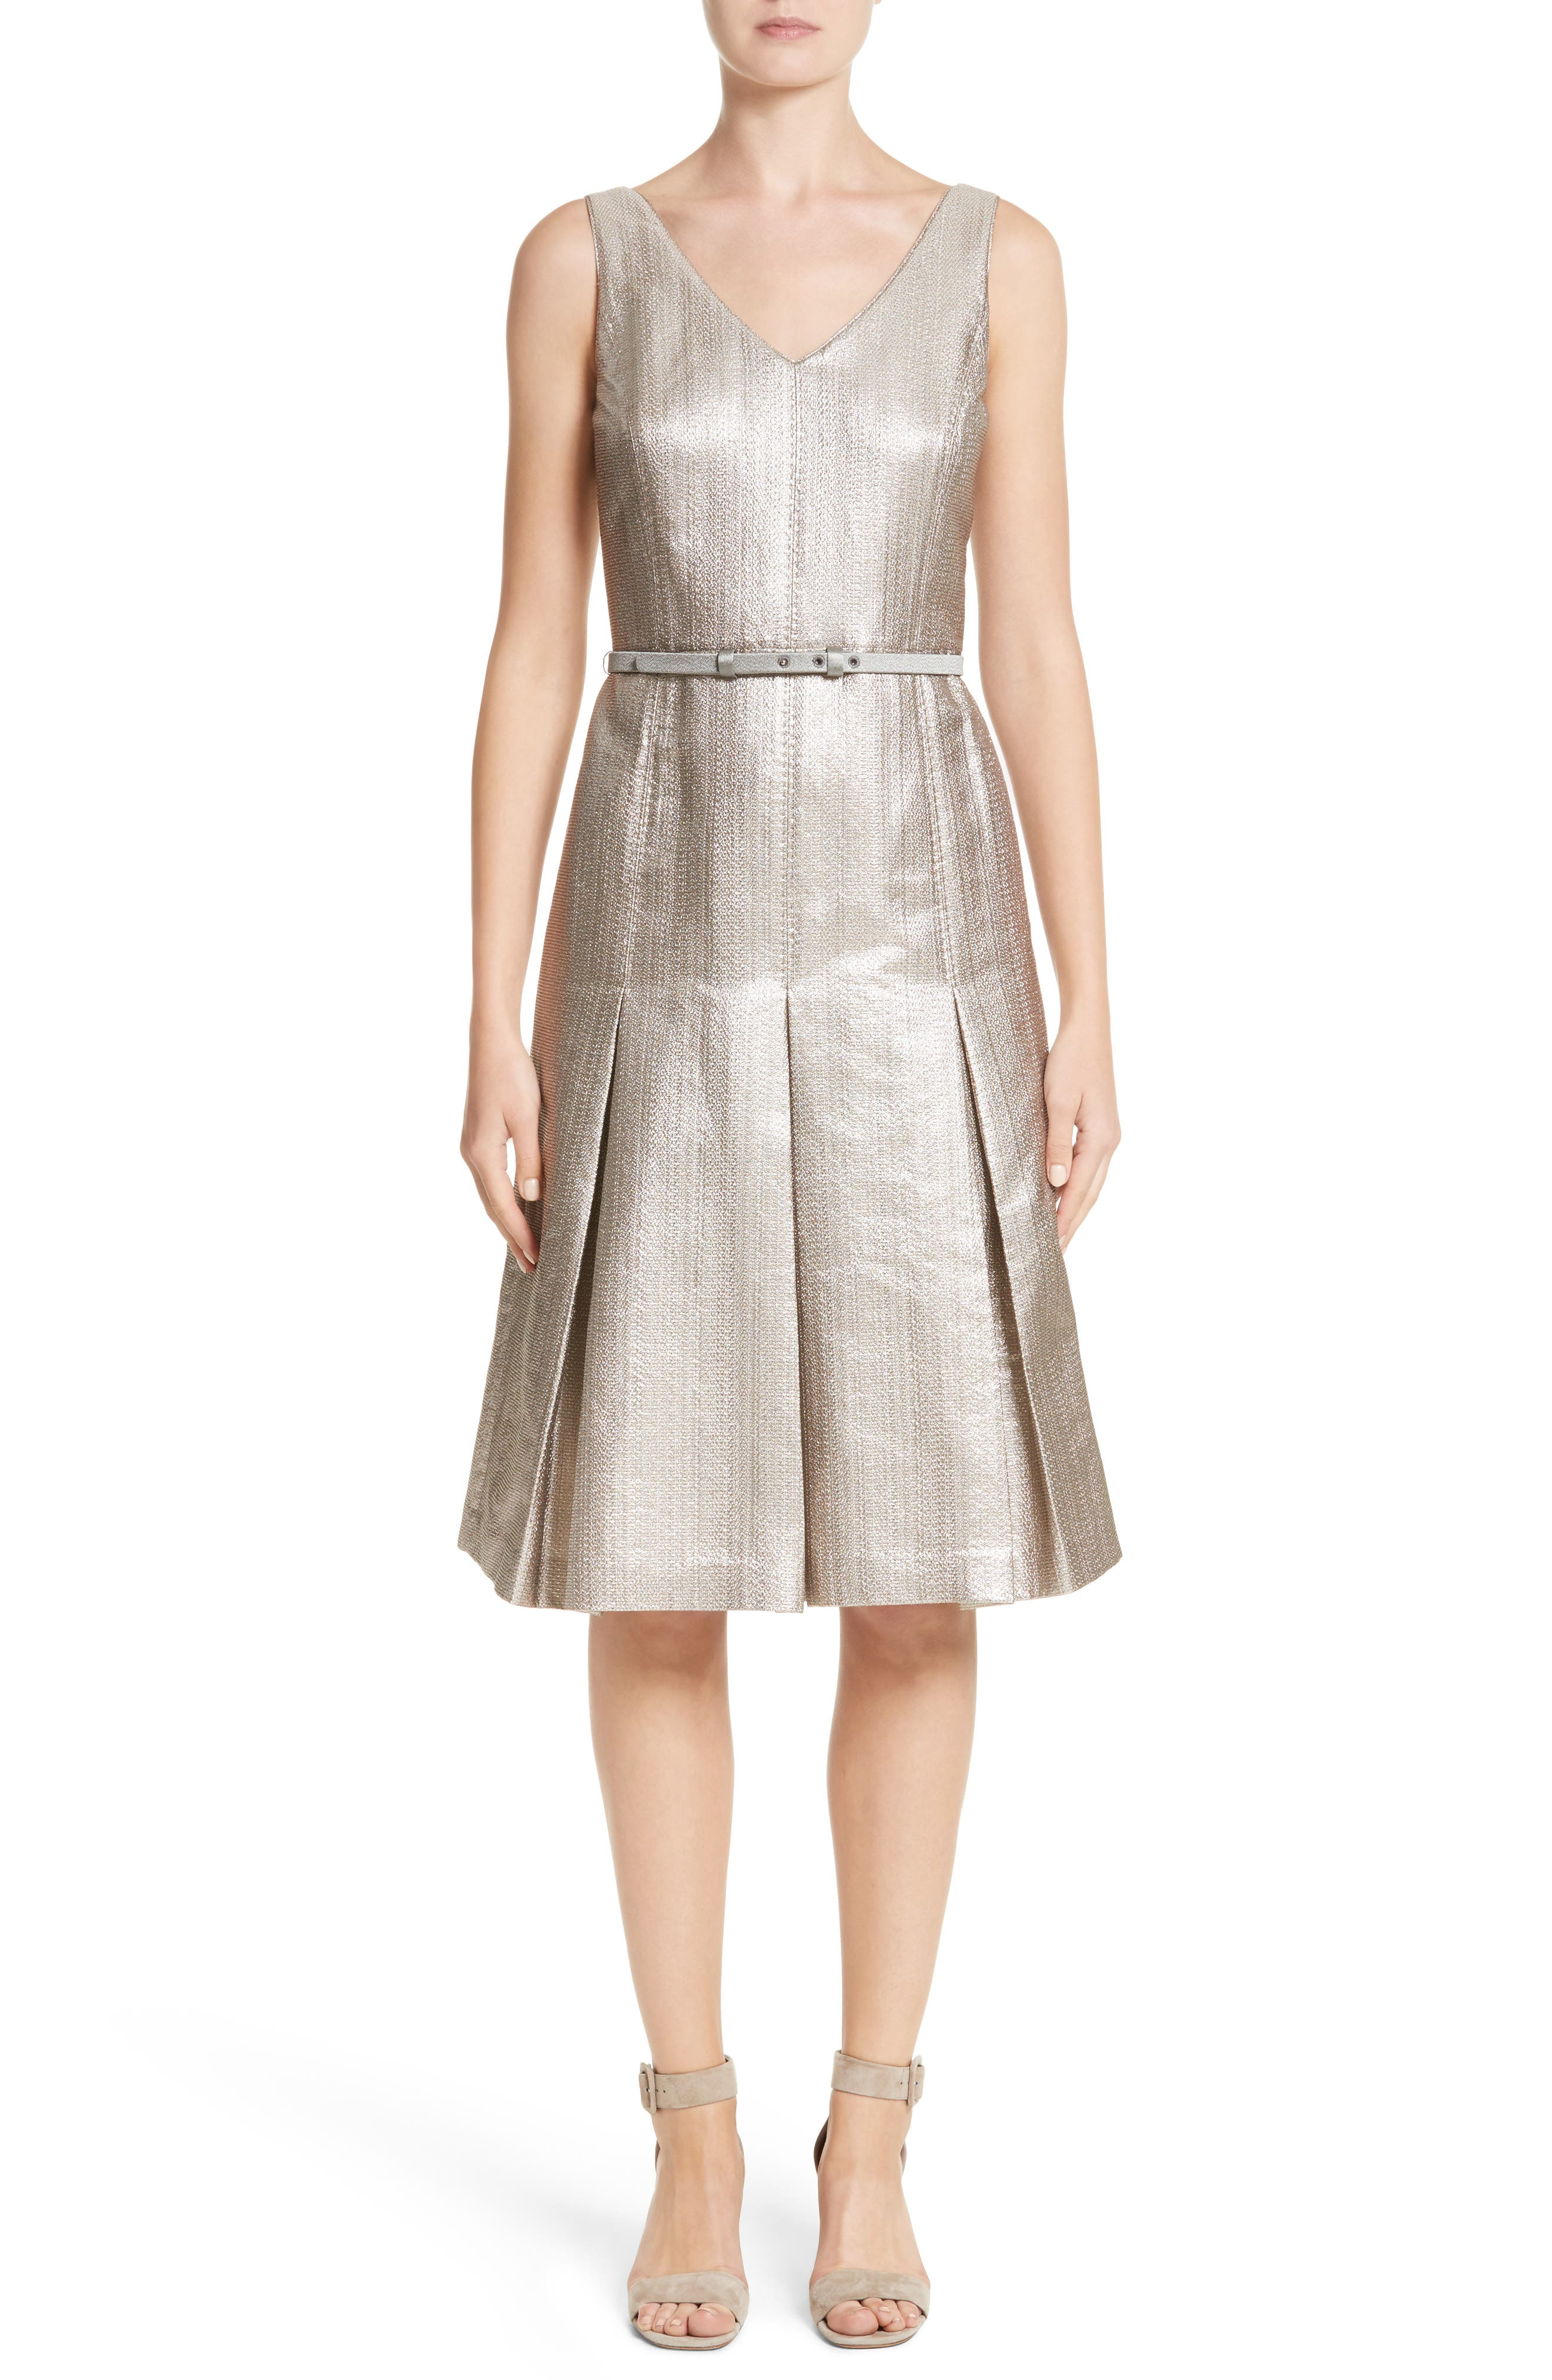 Lois Ceremonial Cloth Dress,                             Main thumbnail 1, color,                             Oyster Metallic